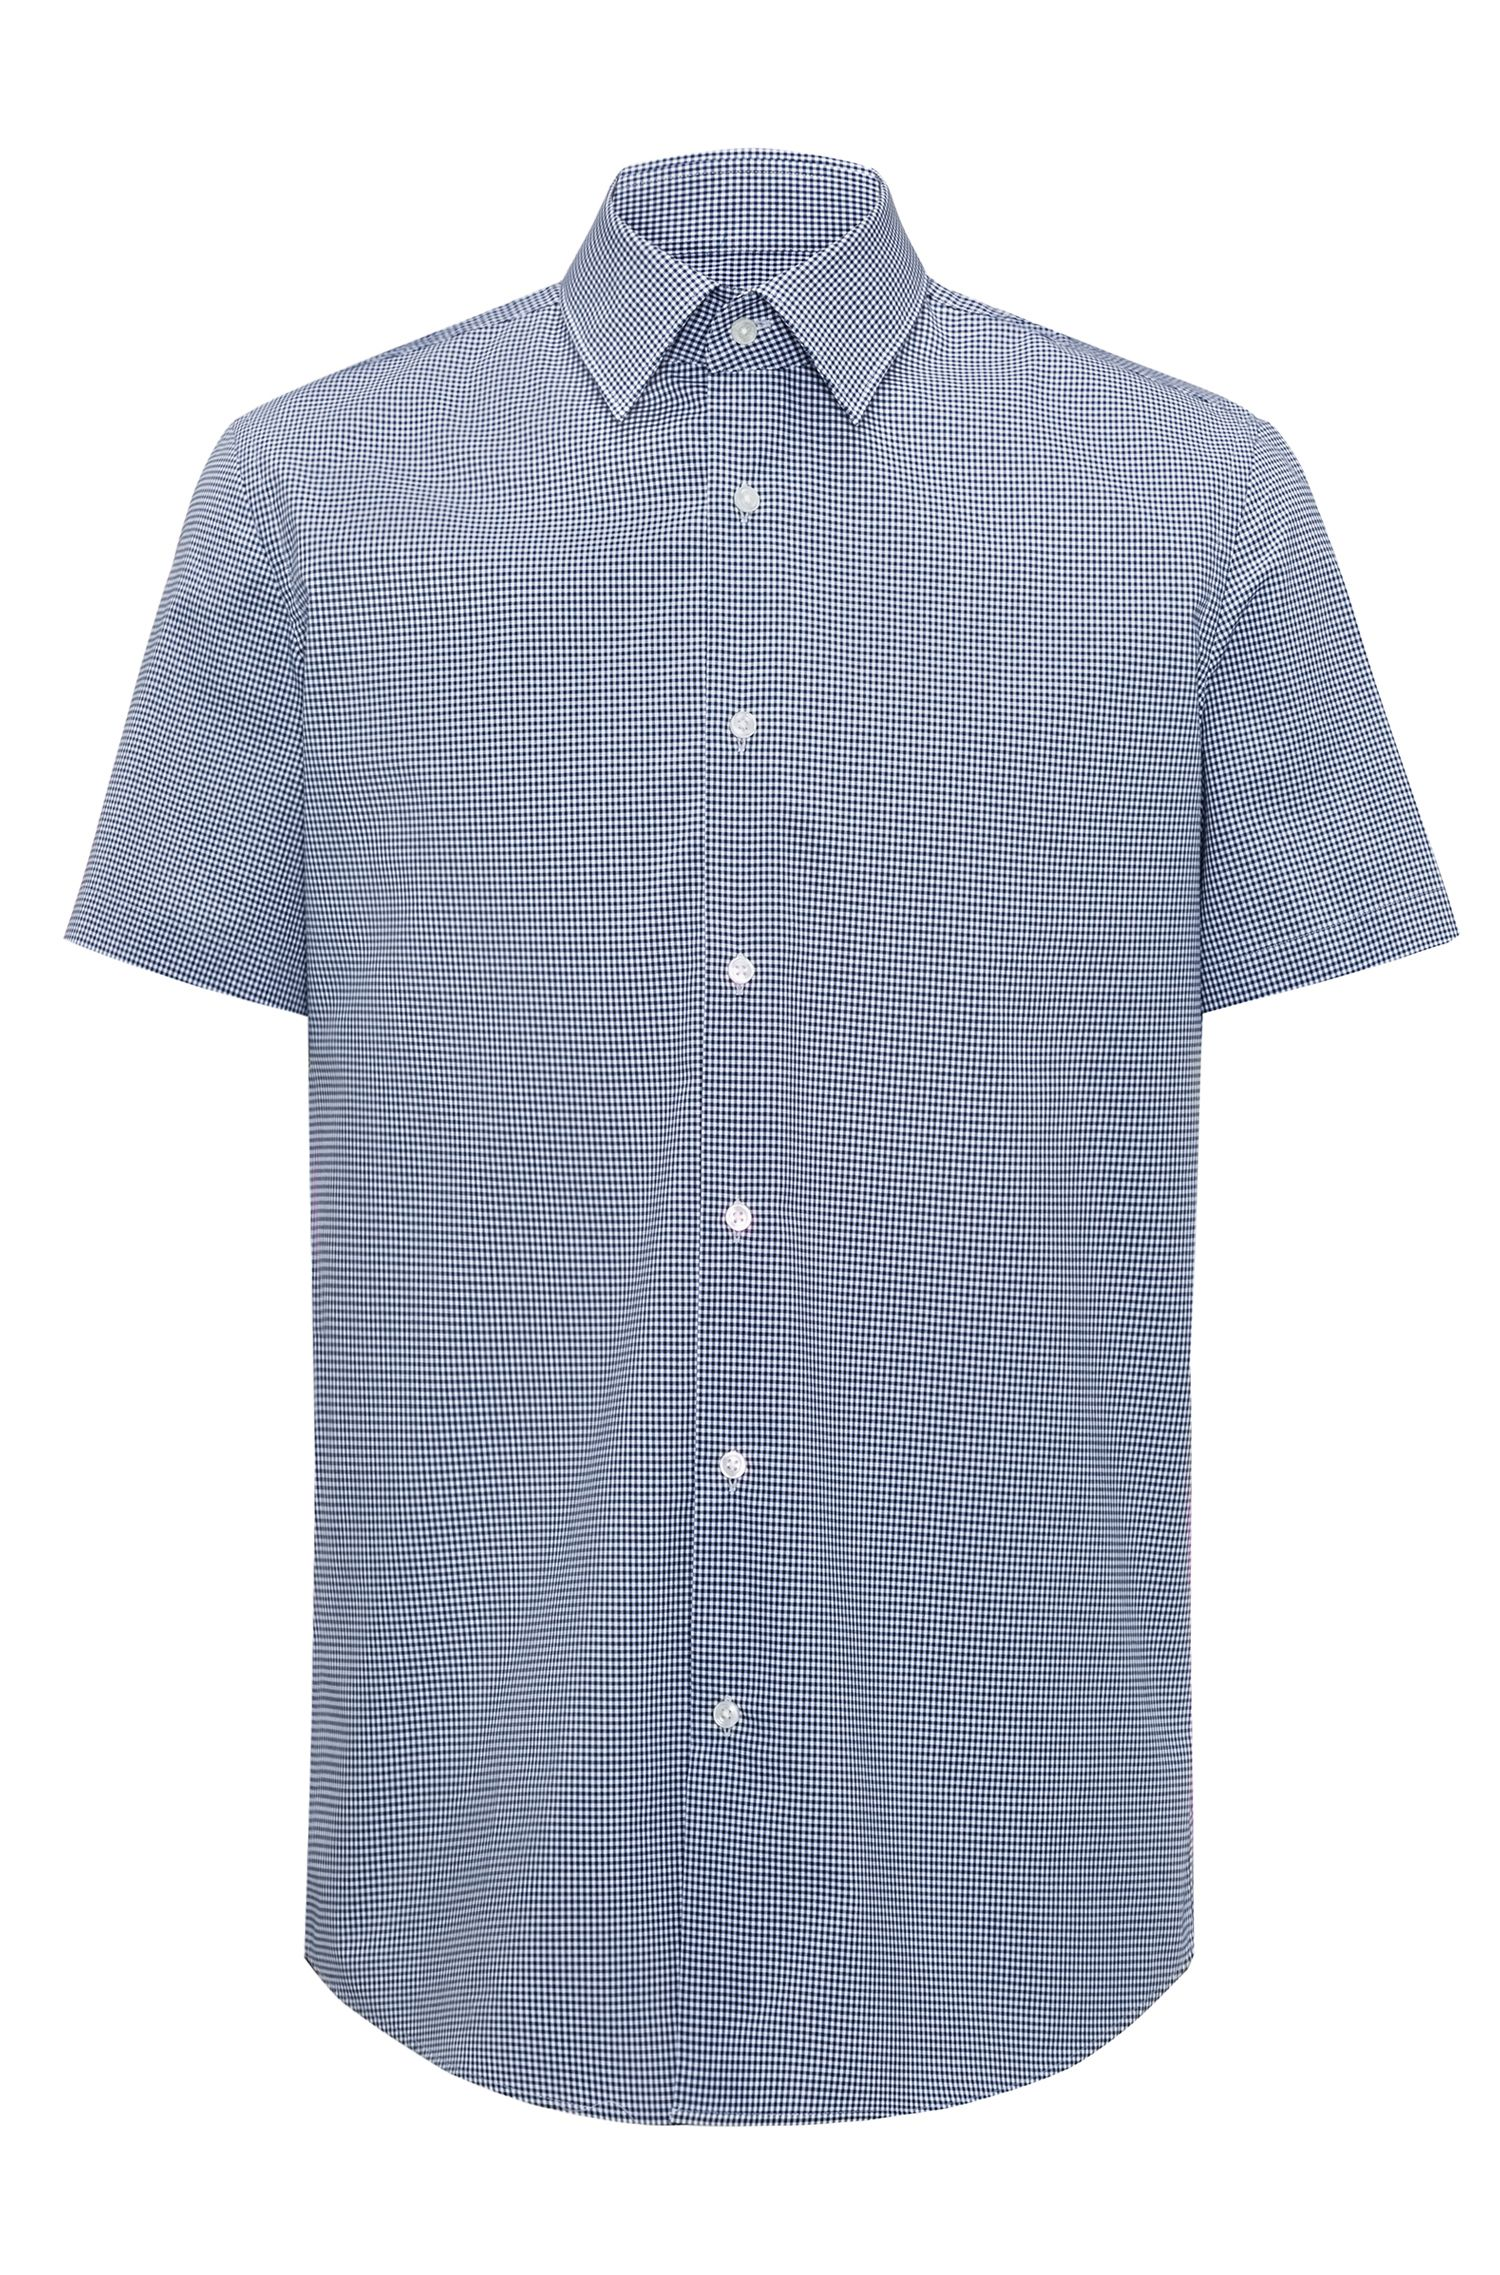 Regular-fit short-sleeved shirt in easy-iron checked cotton